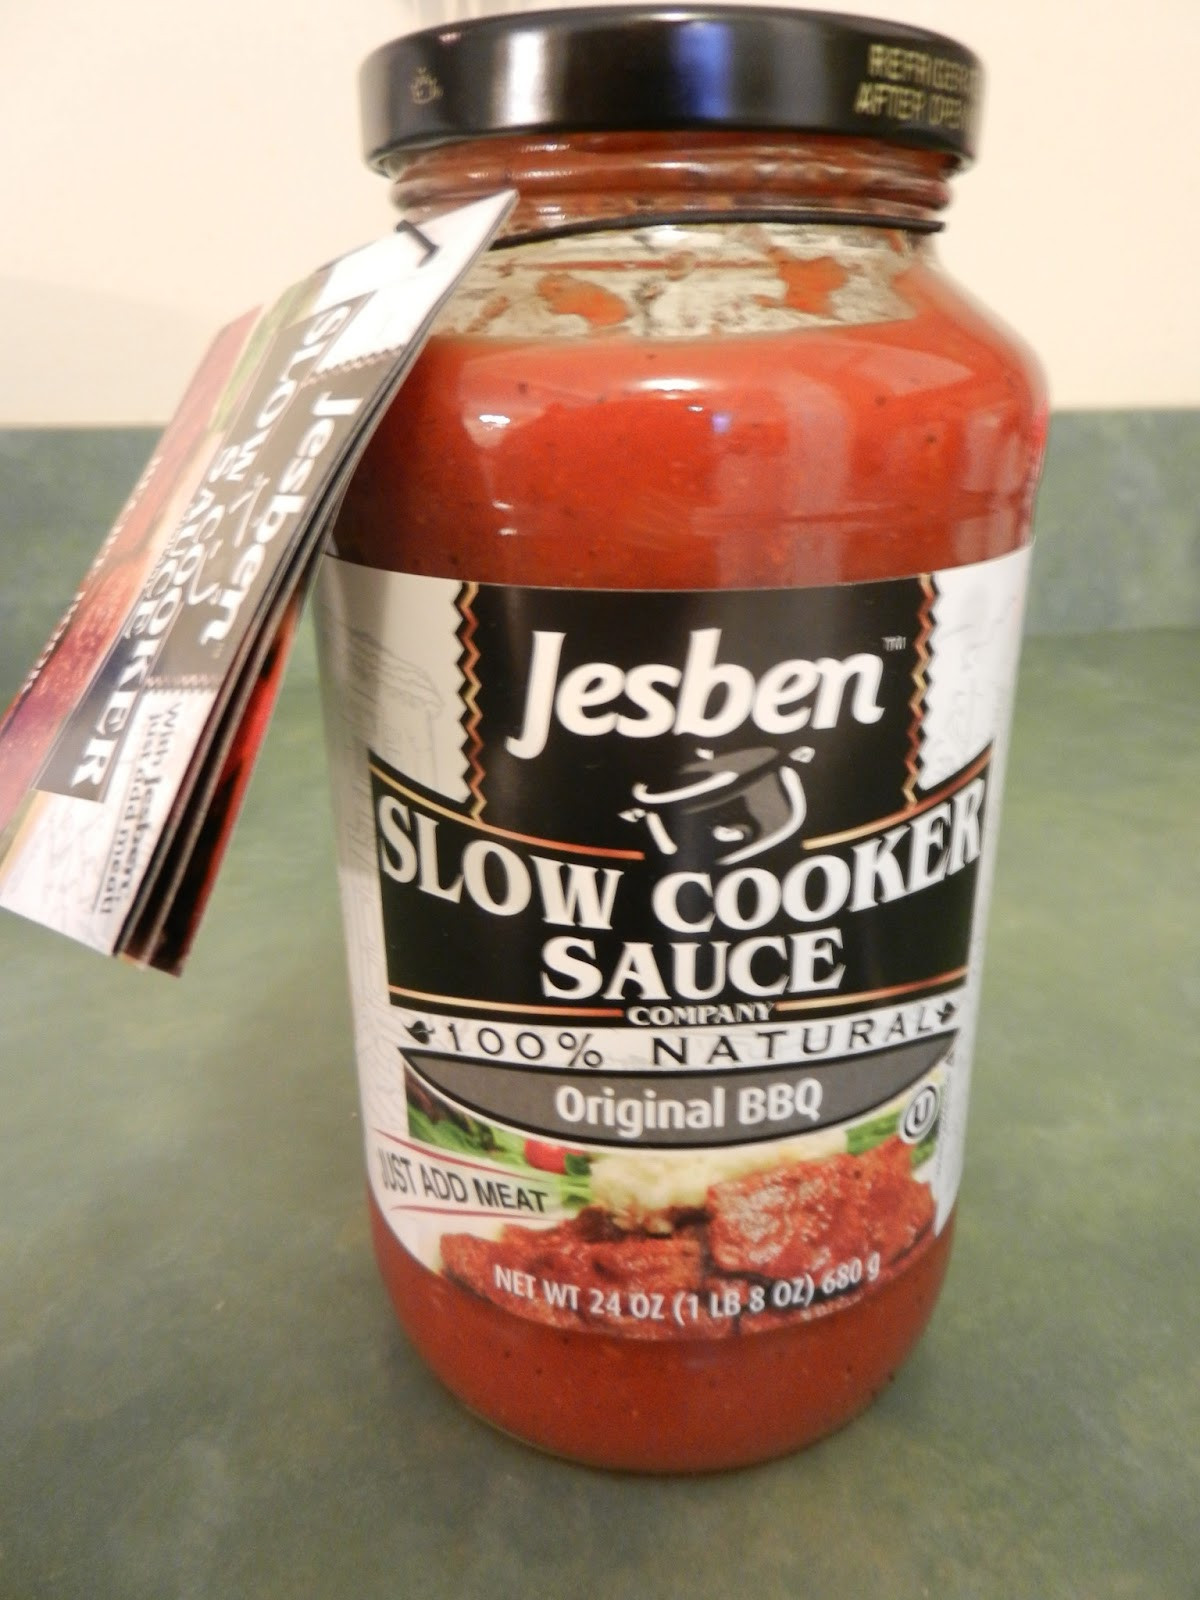 Campbell'S Slow Cooker Sauces  A Busy Mom s Slow Cooker Adventures Jesben Slow Cooker Sauces